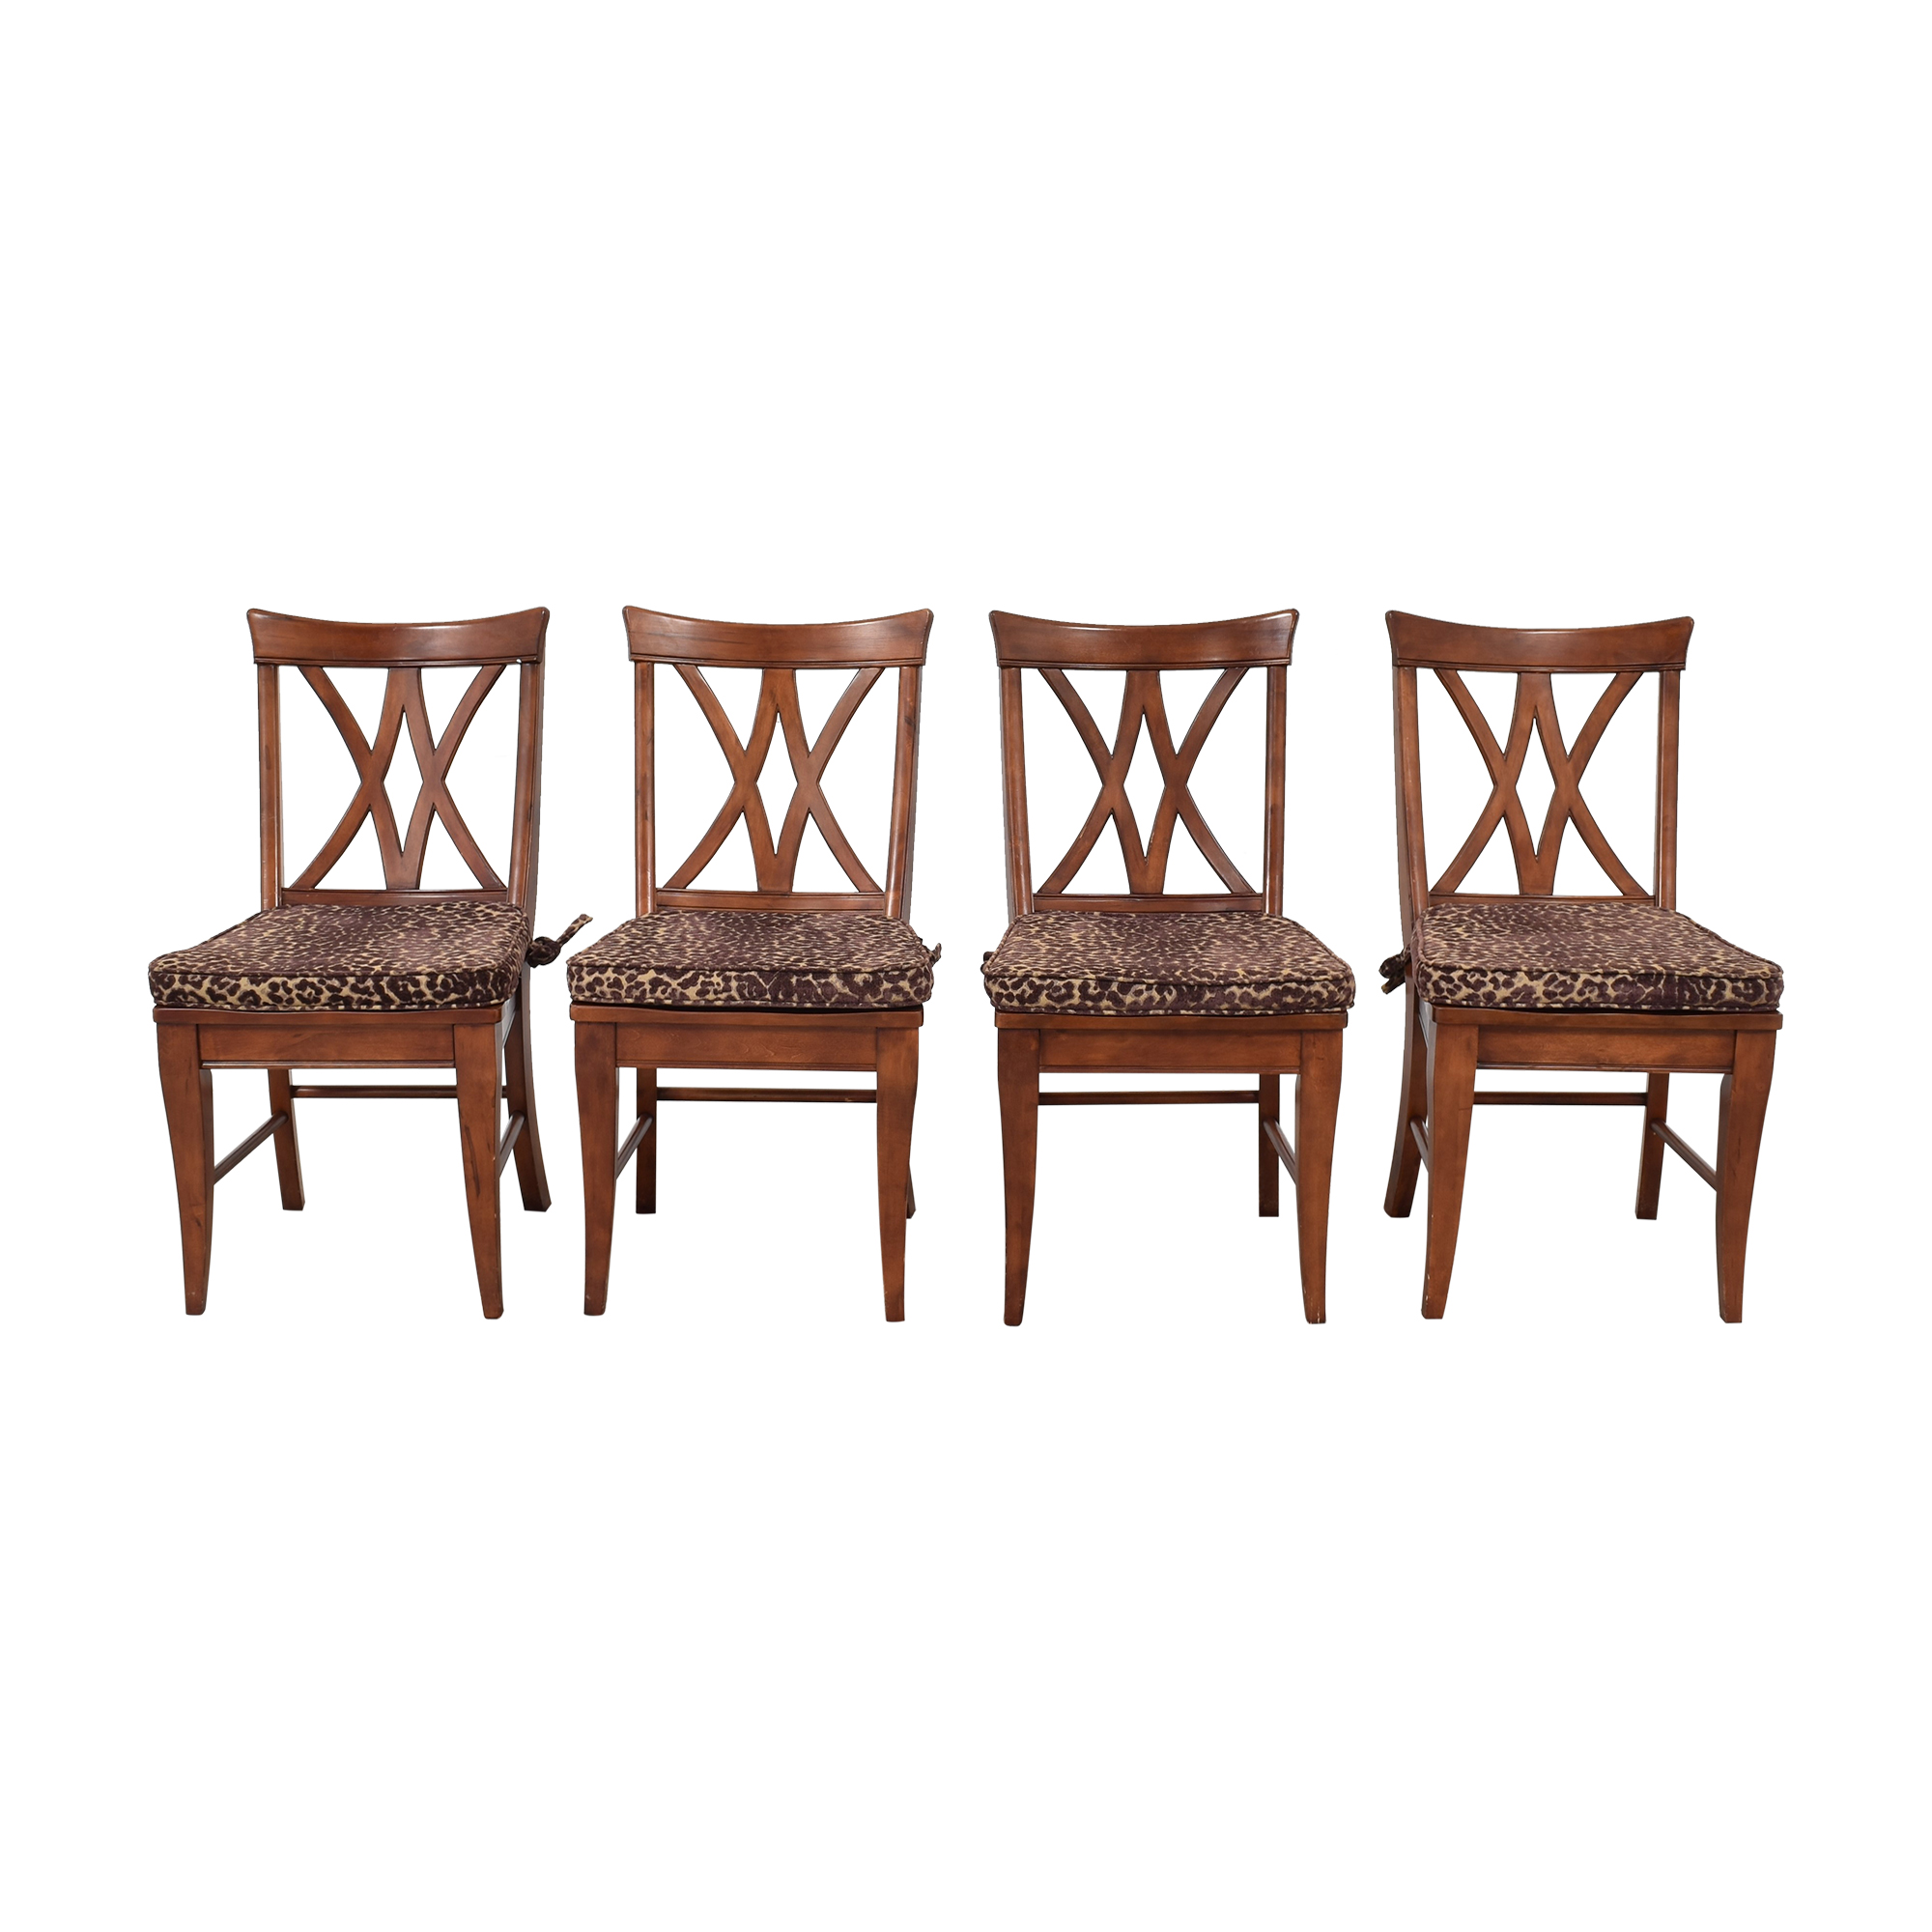 Broyhill Furniture Broyhill Furniture Choices Casual V Back Dining Side Chairs  price